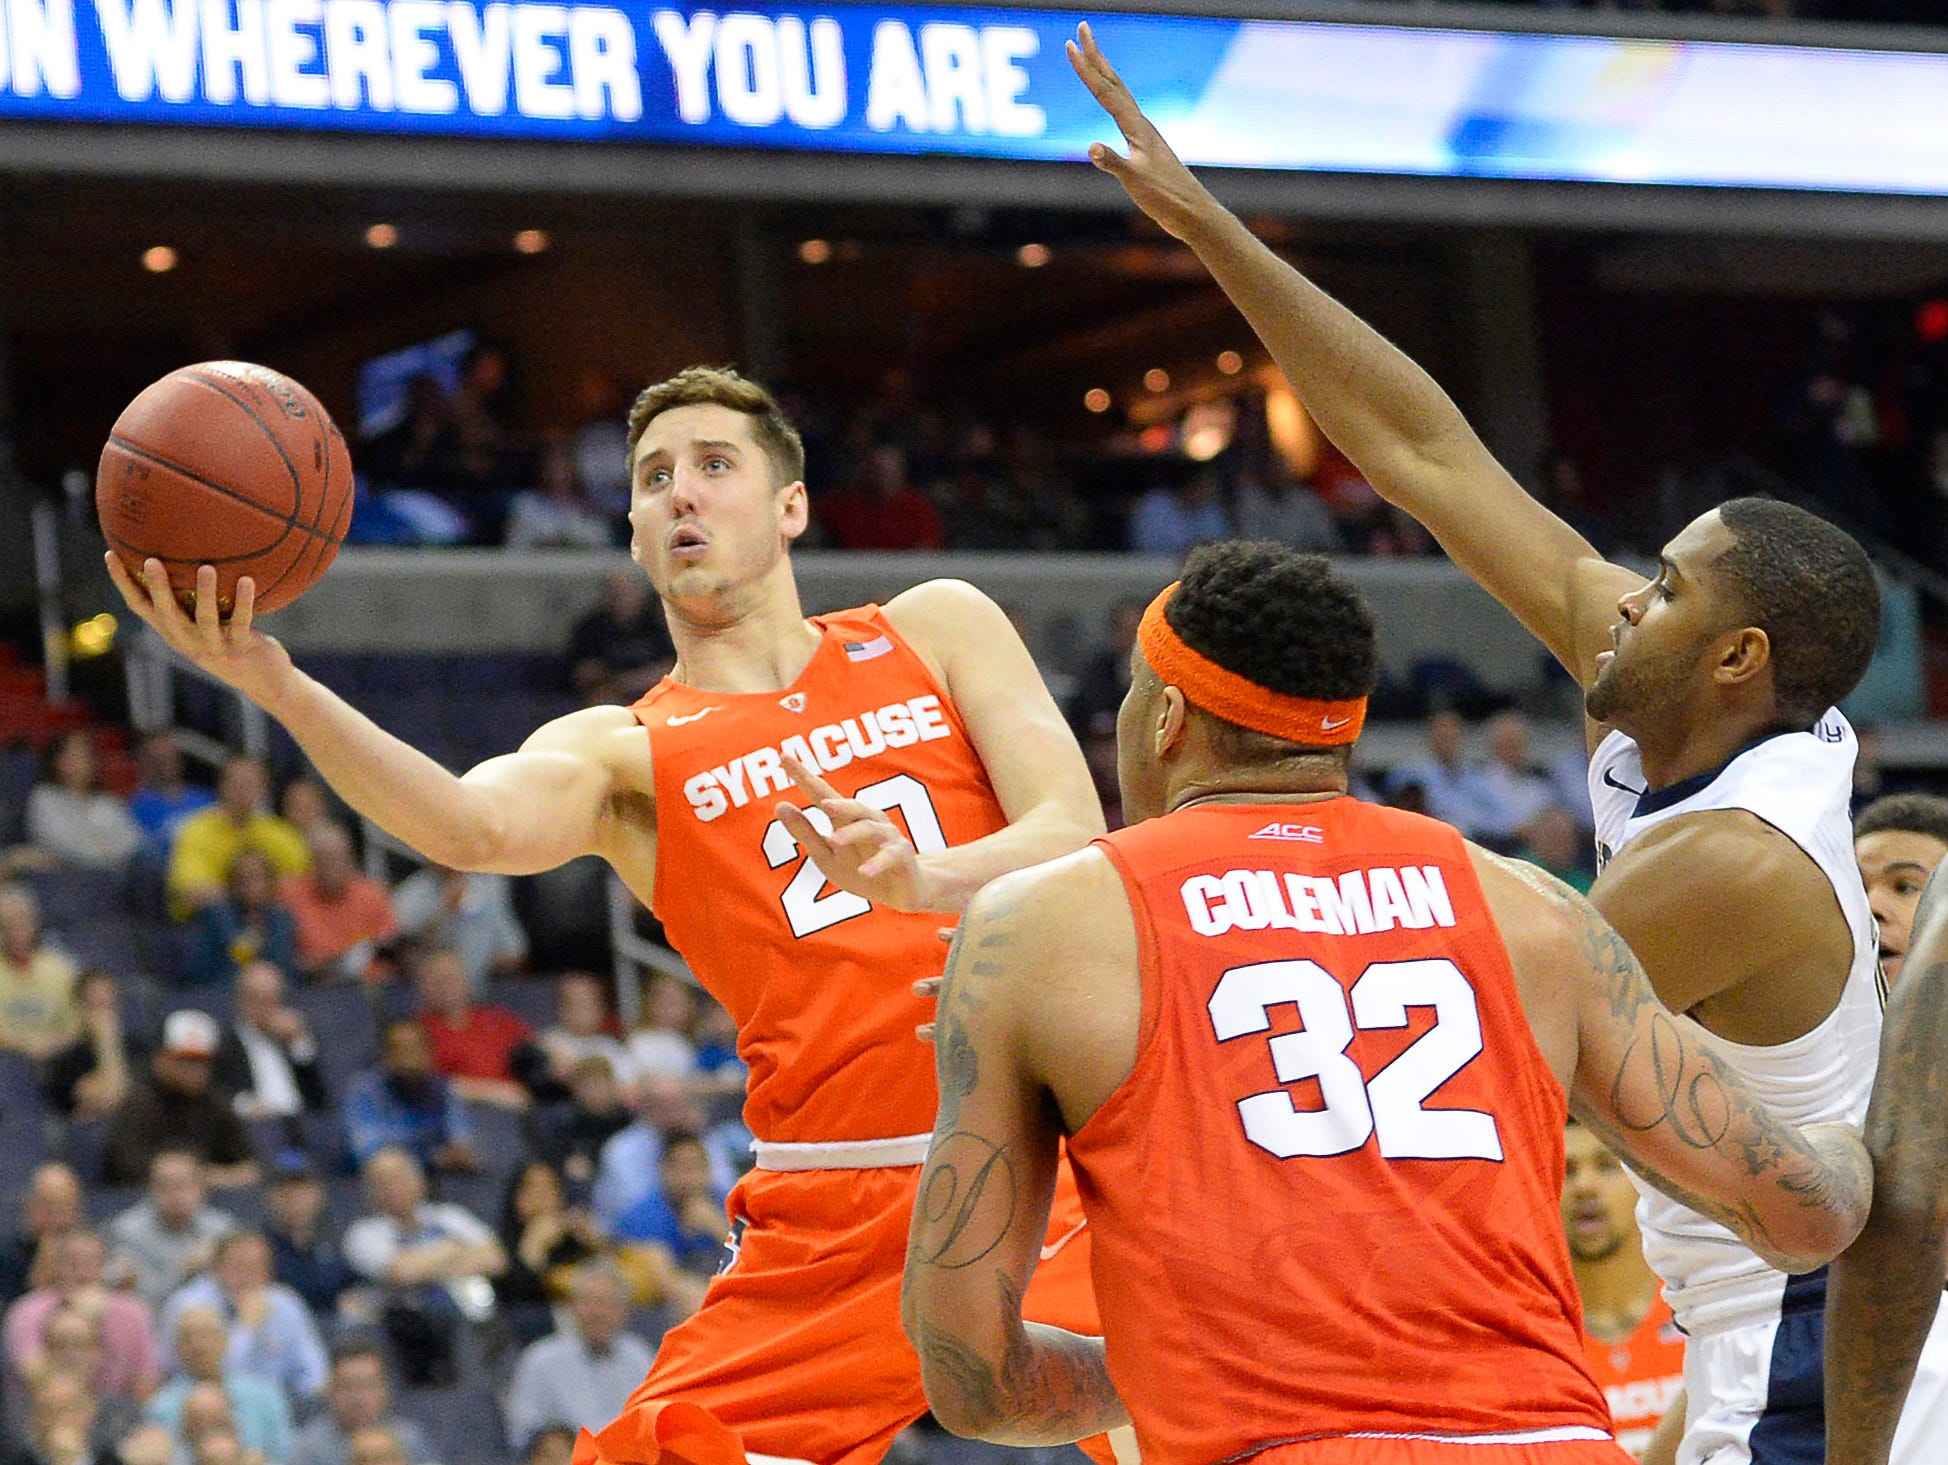 Syracuse's Tyler Lydon takes a scoop shot against Pittsburgh during the ACC tournament in Washington, D.C. on March 9.